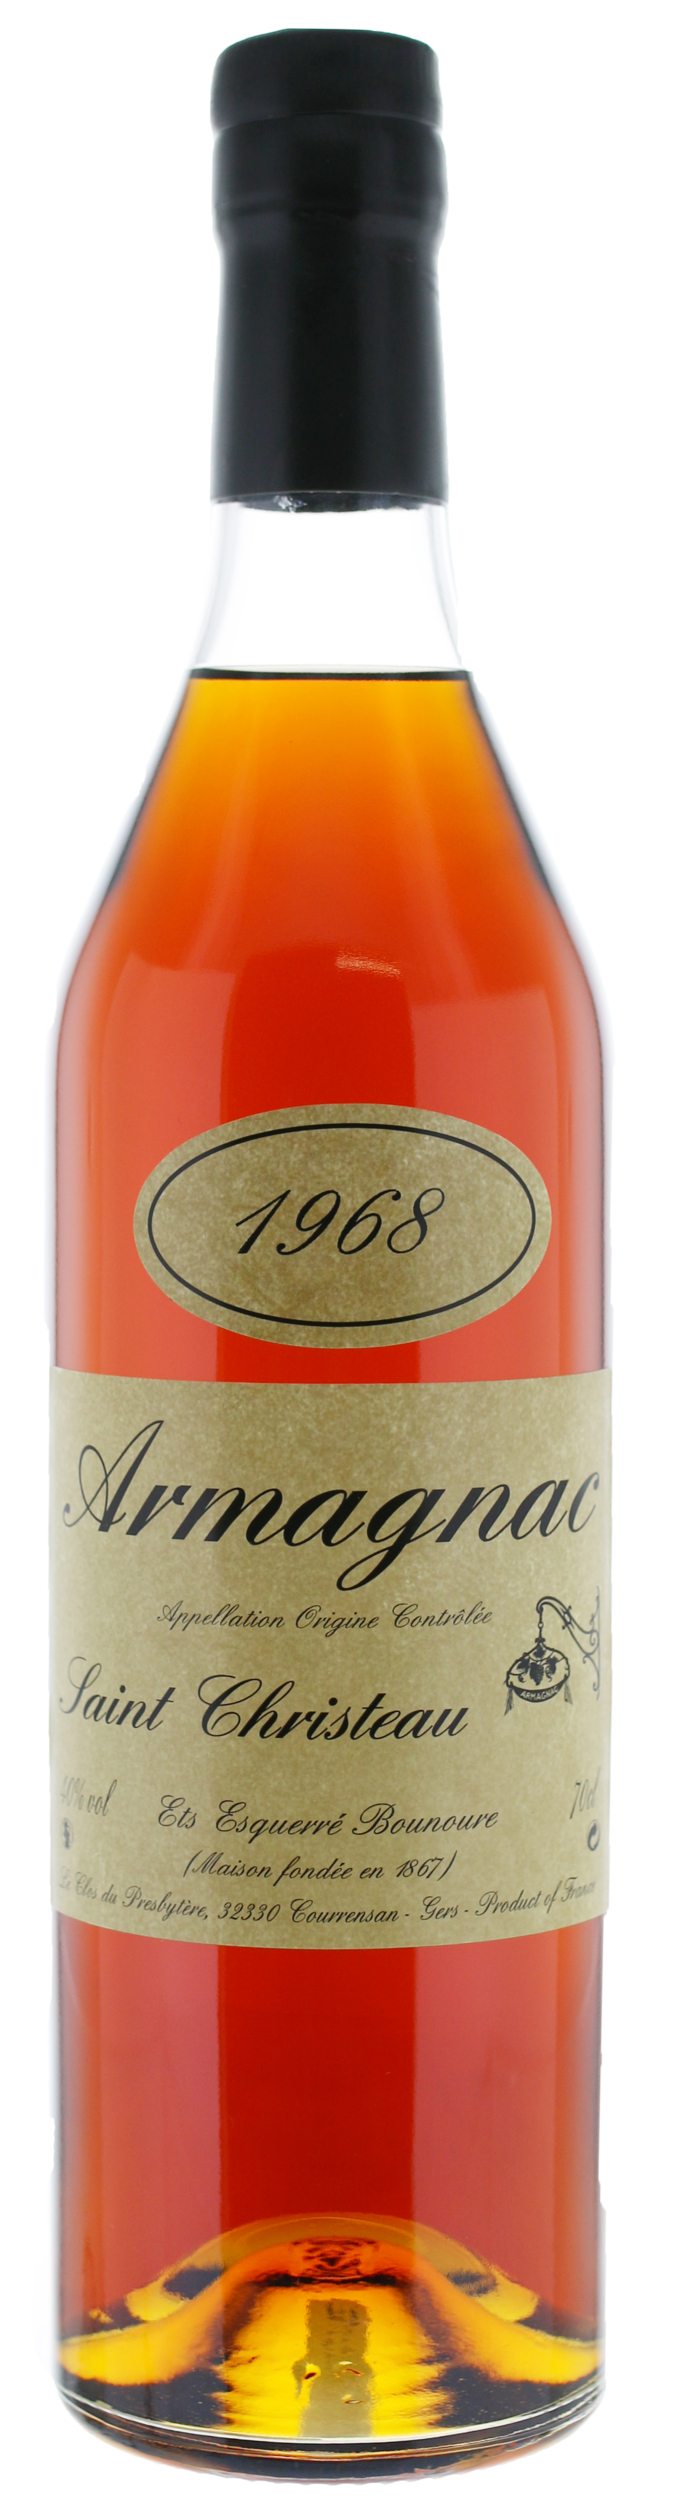 ARMAGNAC - 1968 - Saint-Christeau - 40° - G. Miclo